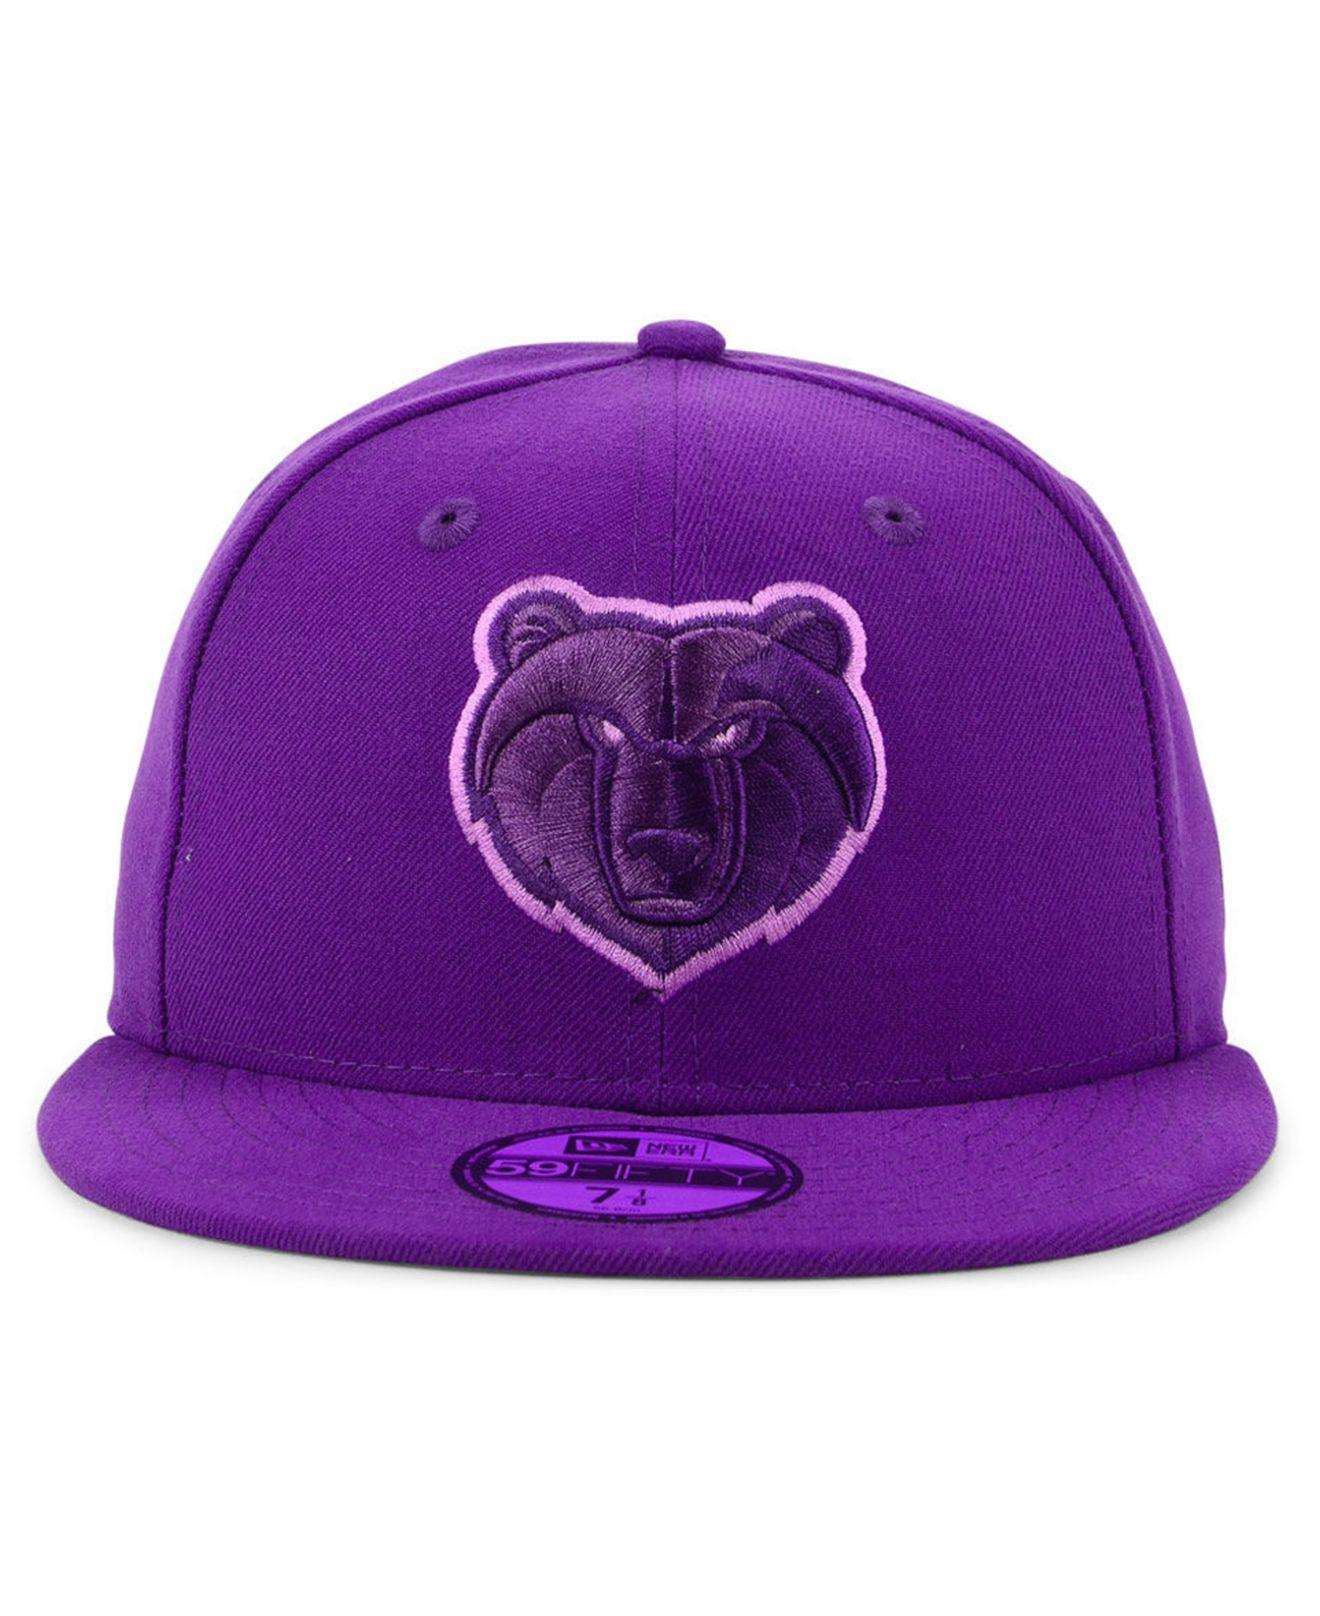 best website b9647 a4daa ... new style lyst ktz memphis grizzlies color prism pack 59fifty fitted cap  in purple for men